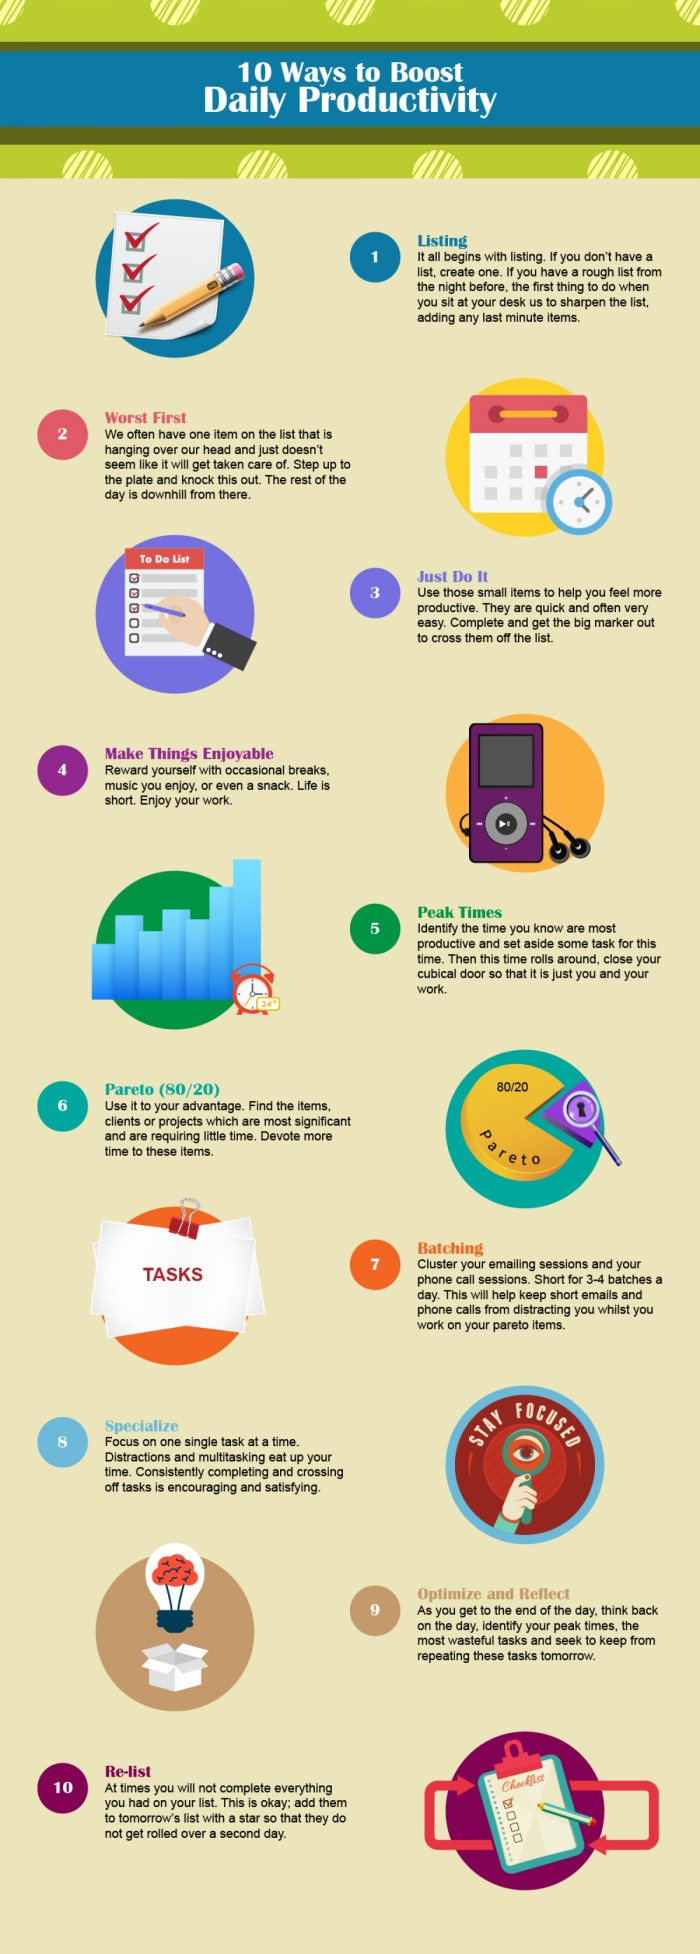 10 Ways to Boost Daily Productivity